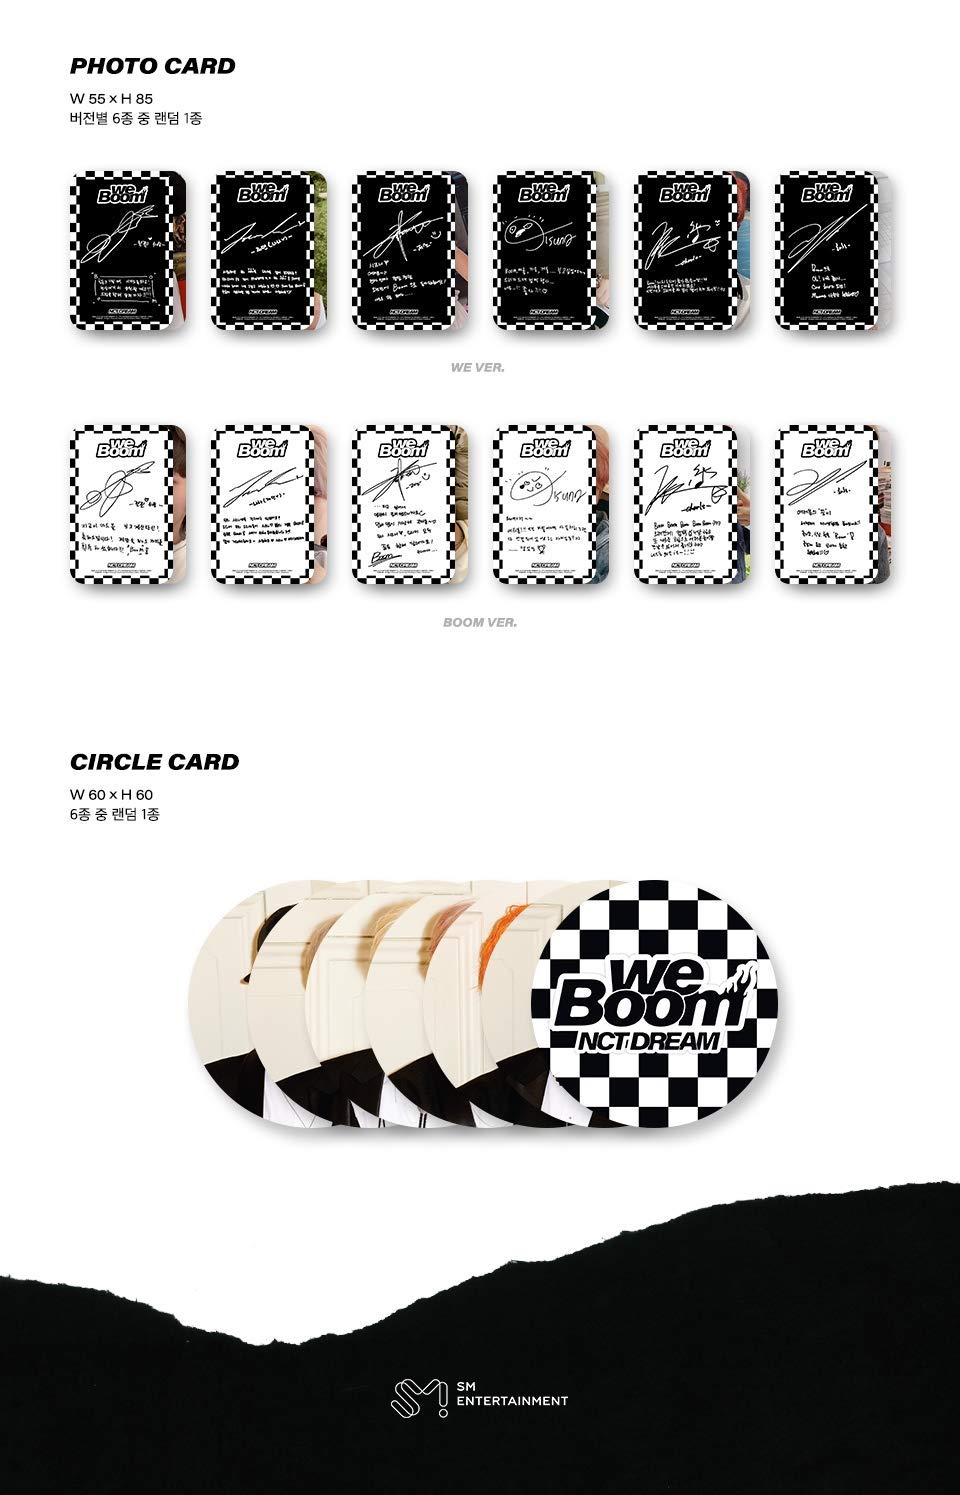 K-POP NCT Dream - WE Boom, Boom version Incl. CD, Booklet, PhotoCard, BoomCard, CircleCard, Folded Poster, Extra Photocards Set by SM Entertainment